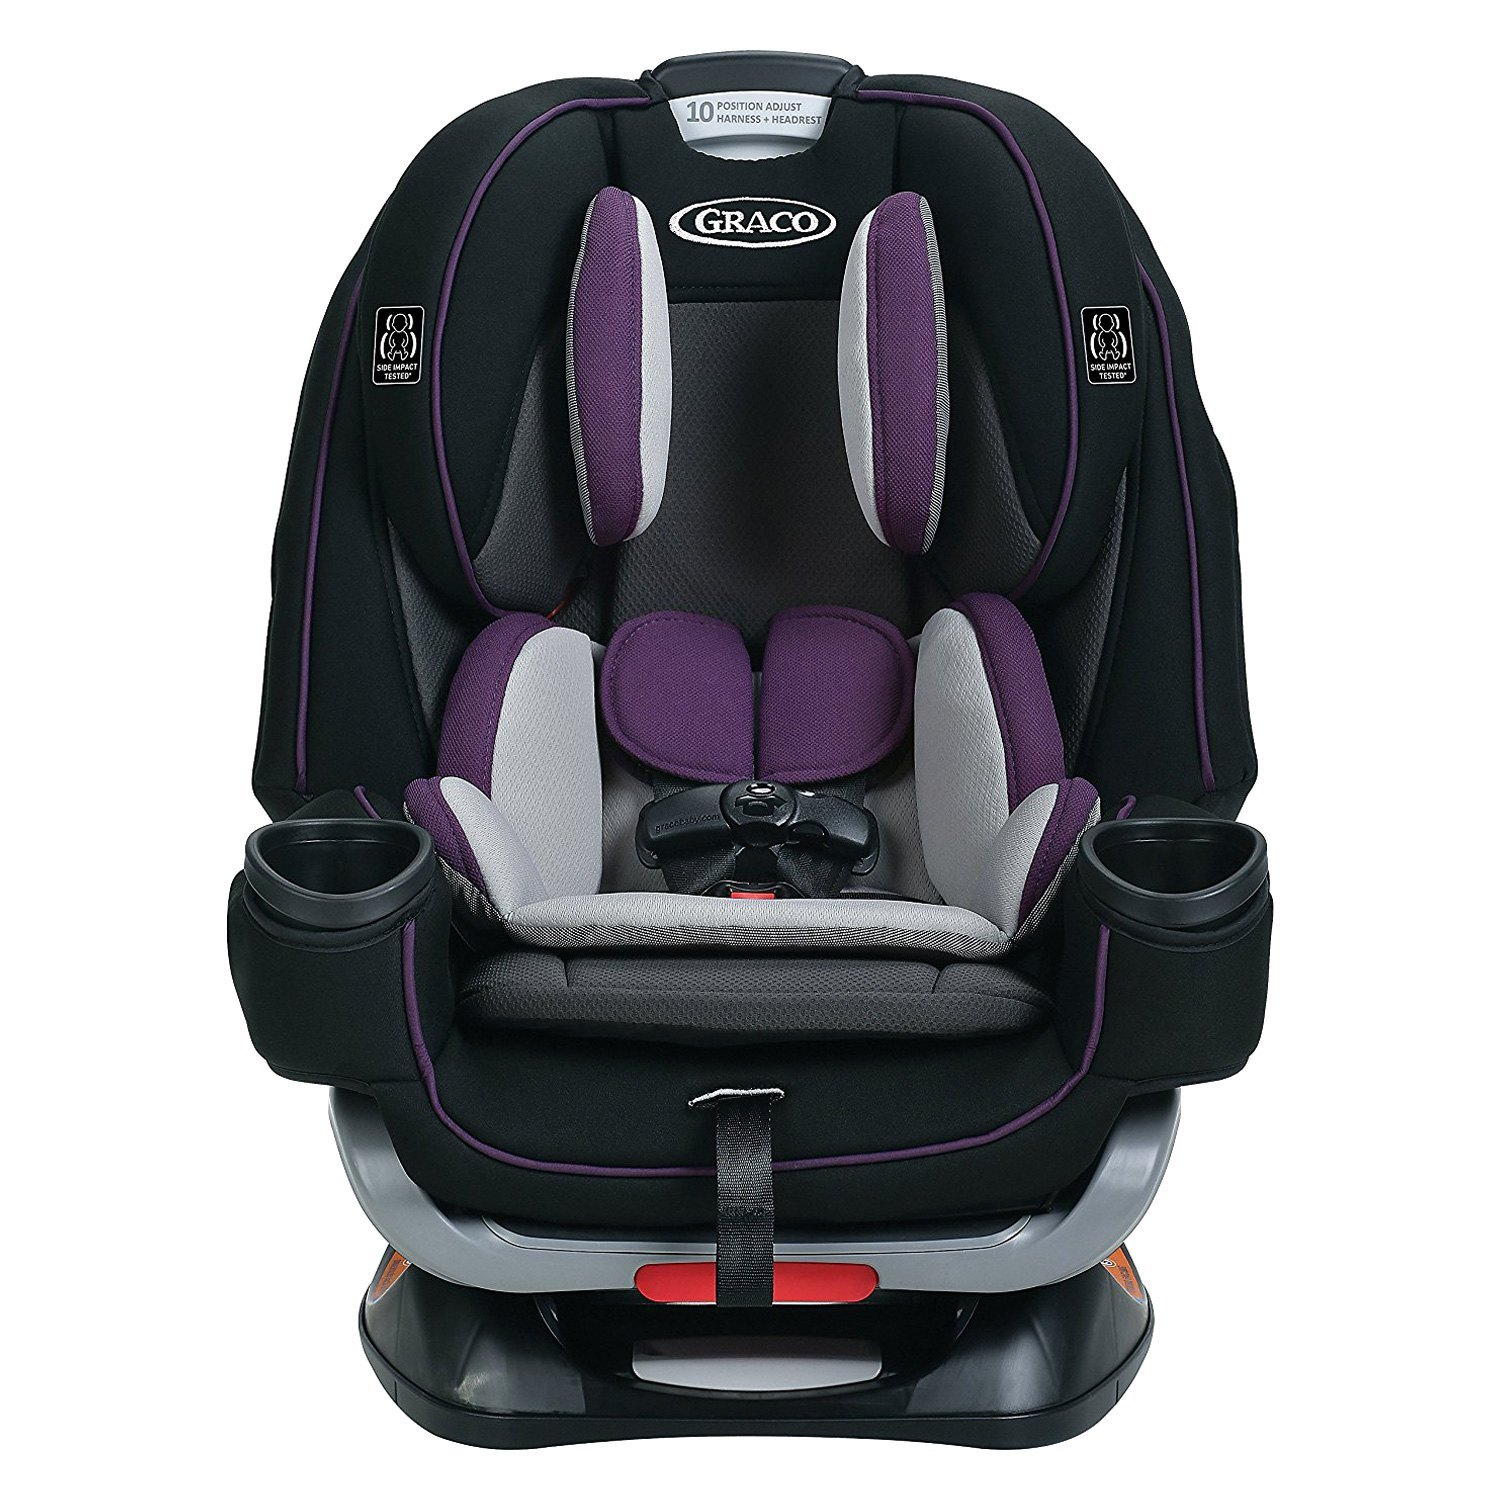 graco baby 2001872 4ever extend2fit jodie style all in one convertible car seat. Black Bedroom Furniture Sets. Home Design Ideas